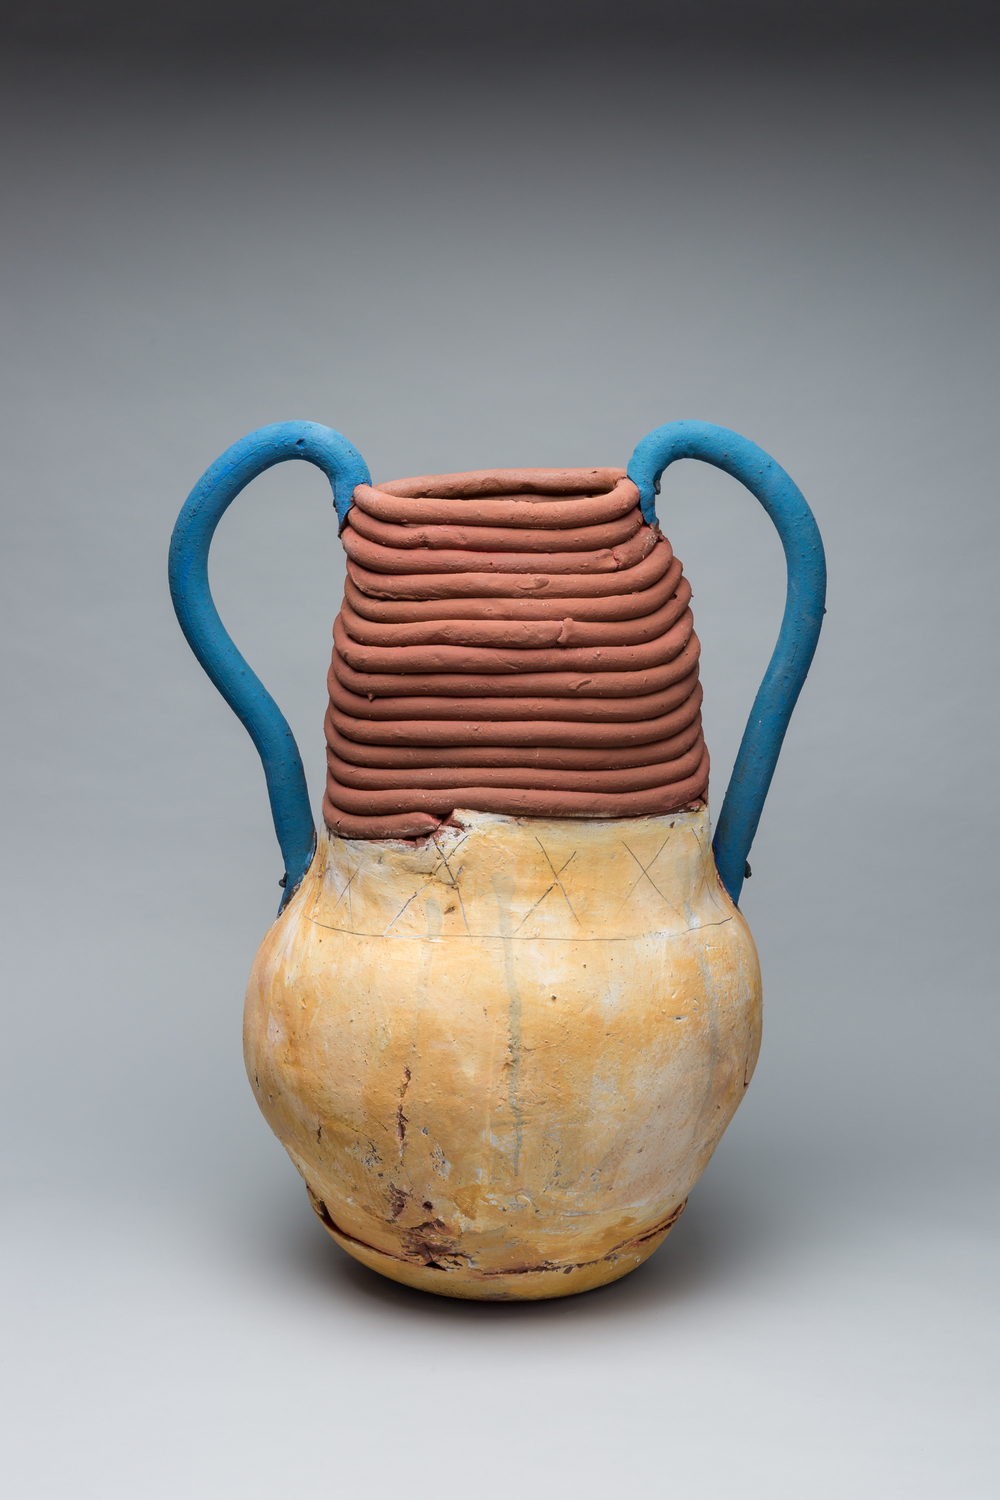 Large Pot with Blue Handles, 2016, 30%22 x 24%22_front.jpg